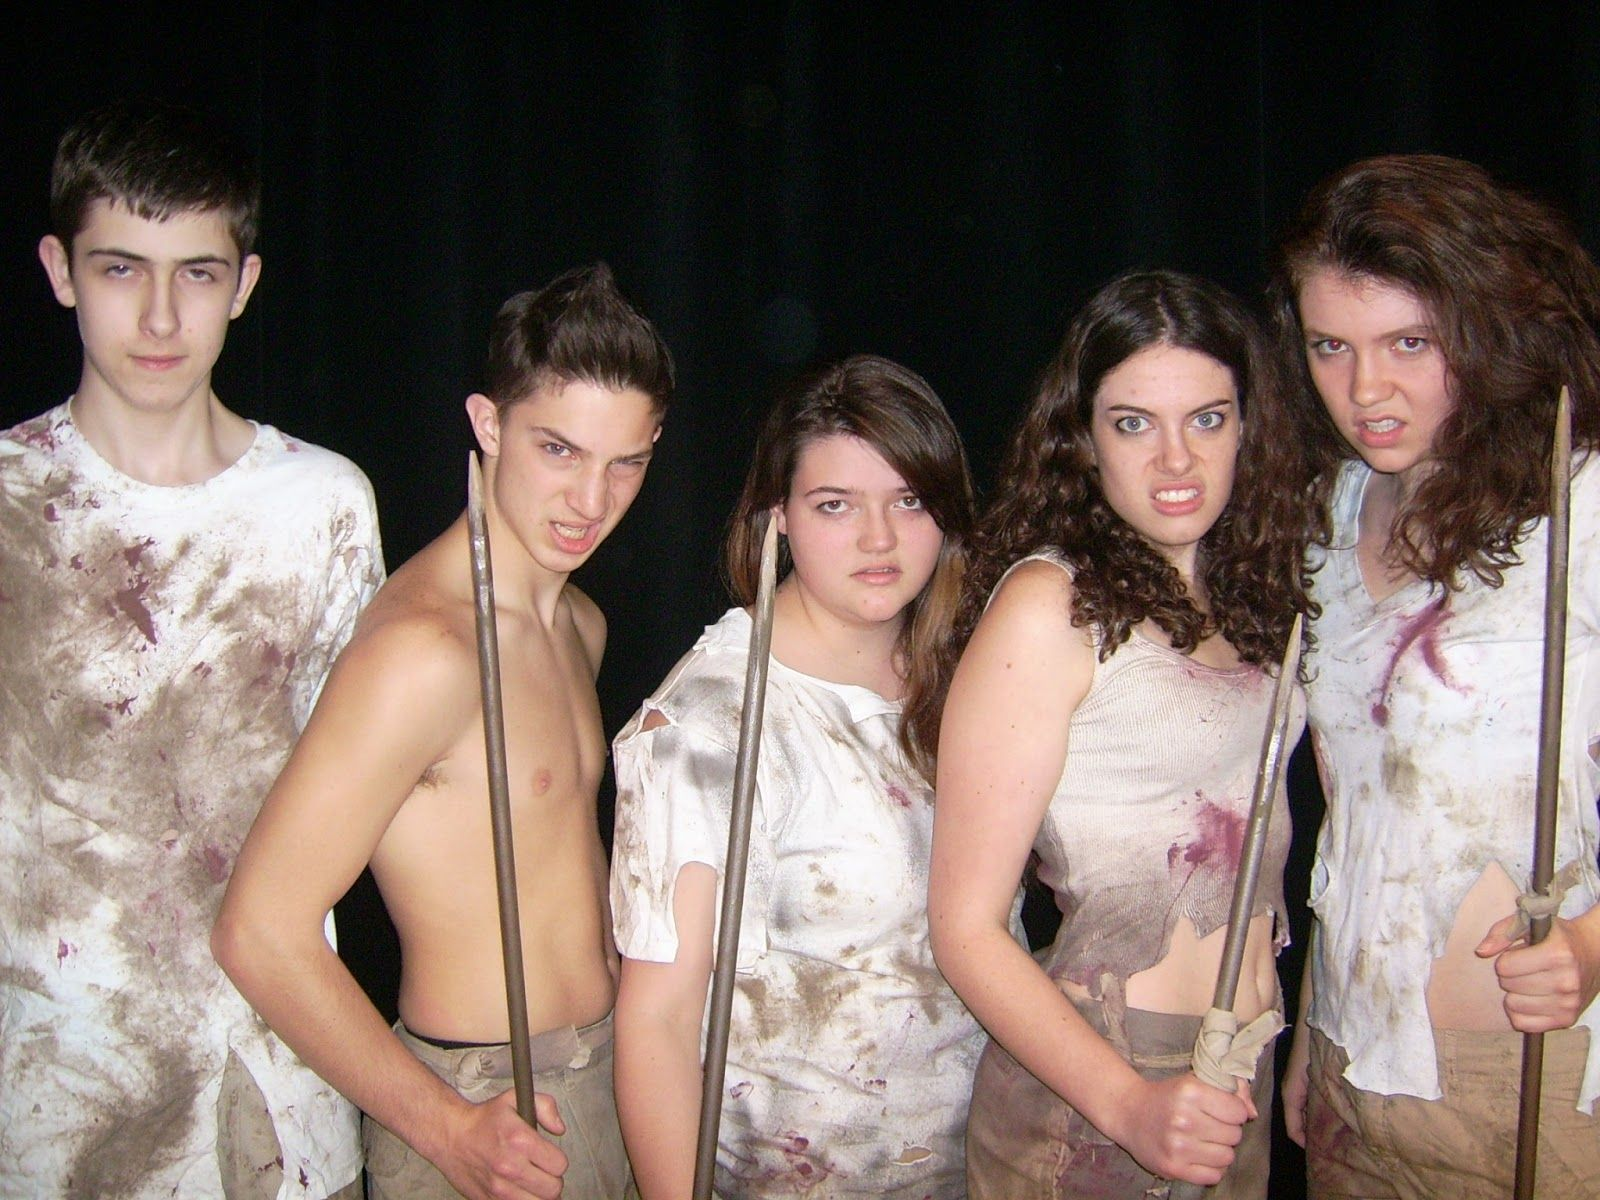 lord of the flies cast